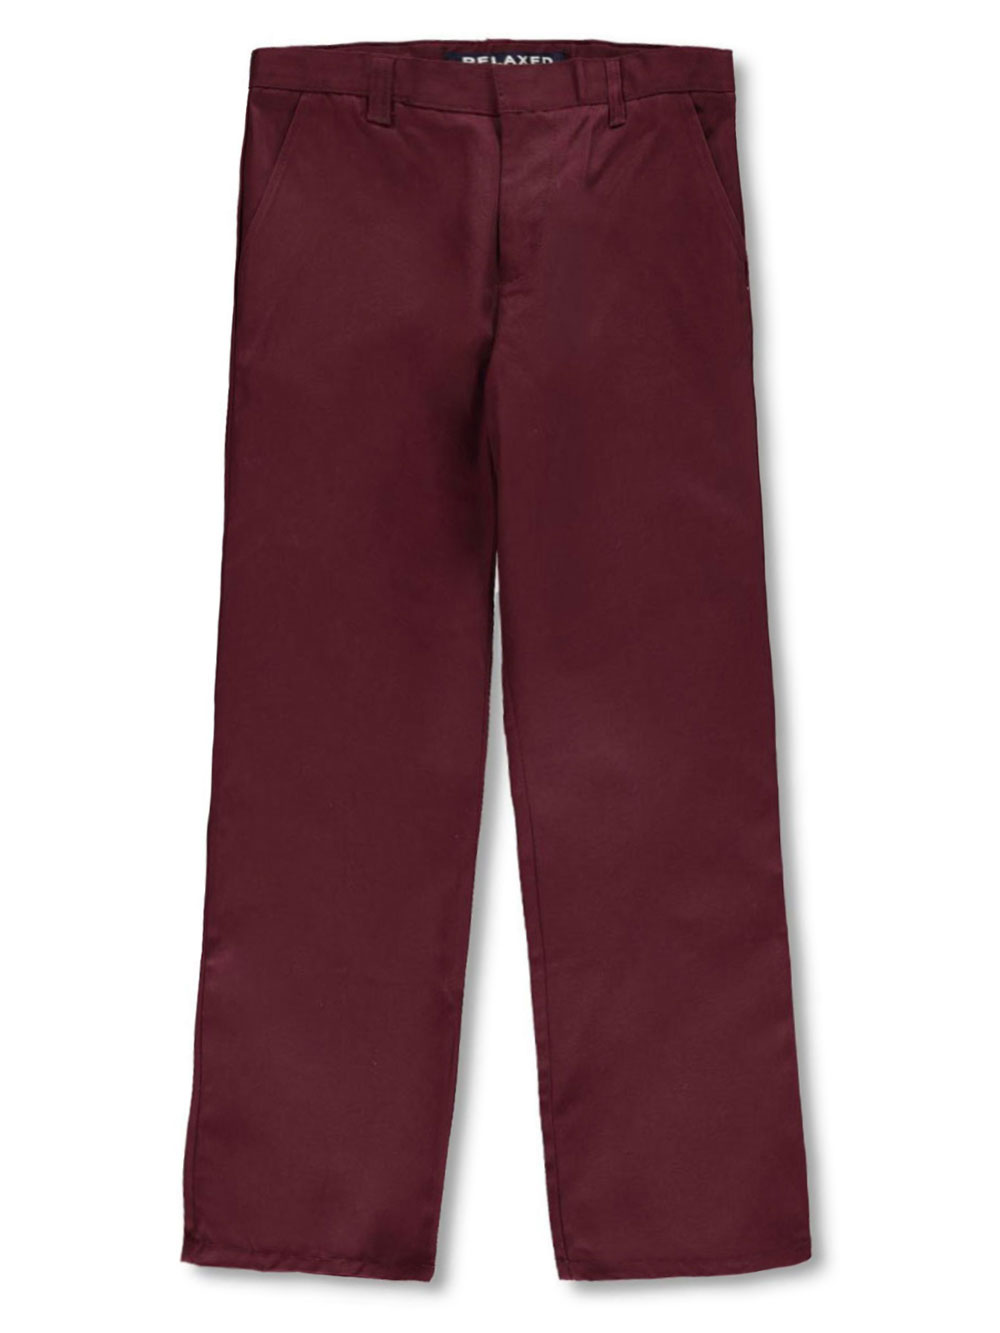 Size 12h Pants for Boys